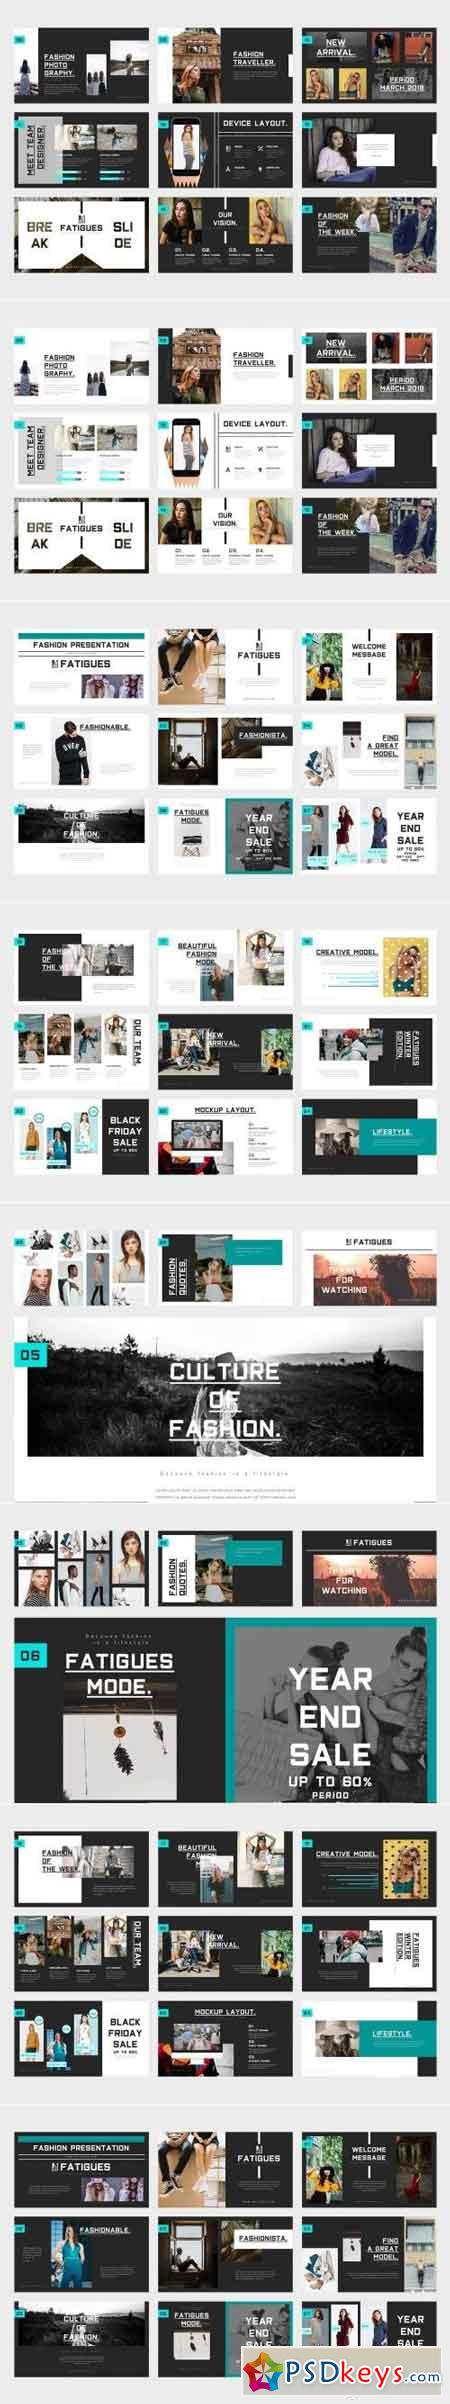 Fatigues Fashion Lookbook Keynote Template